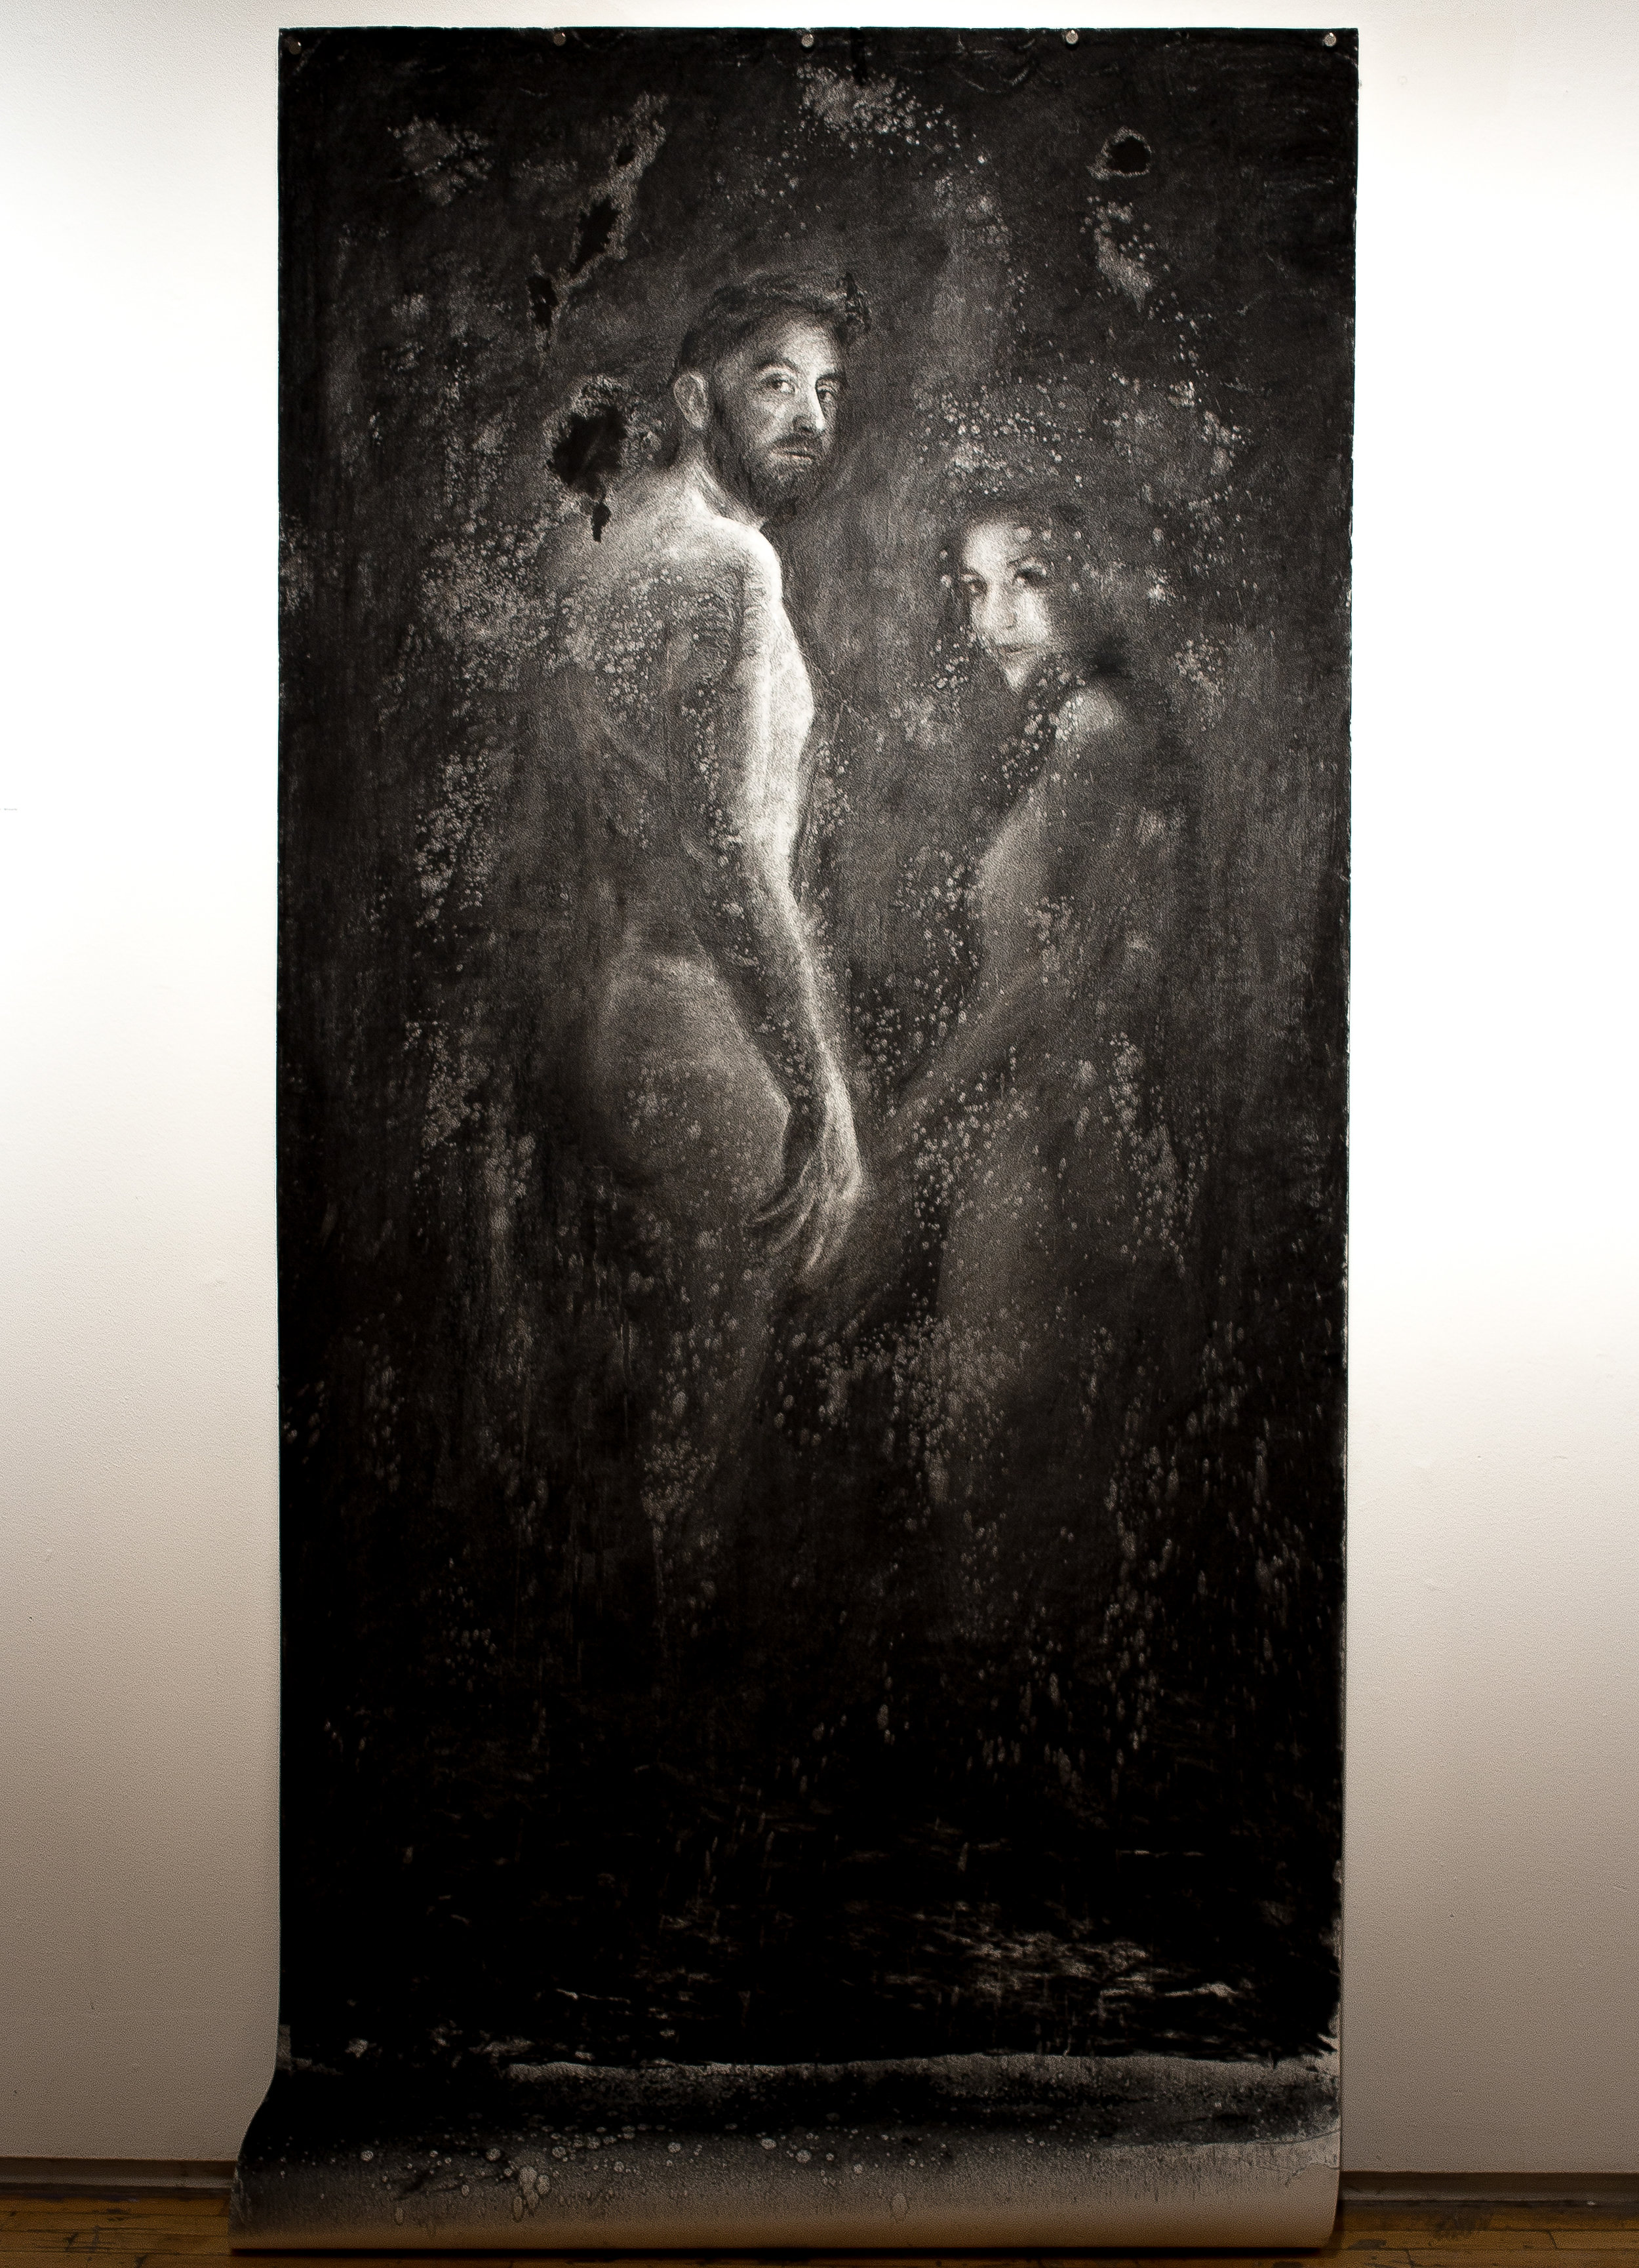 Ways to say hello, 3ft x 7ft charcoal on paper